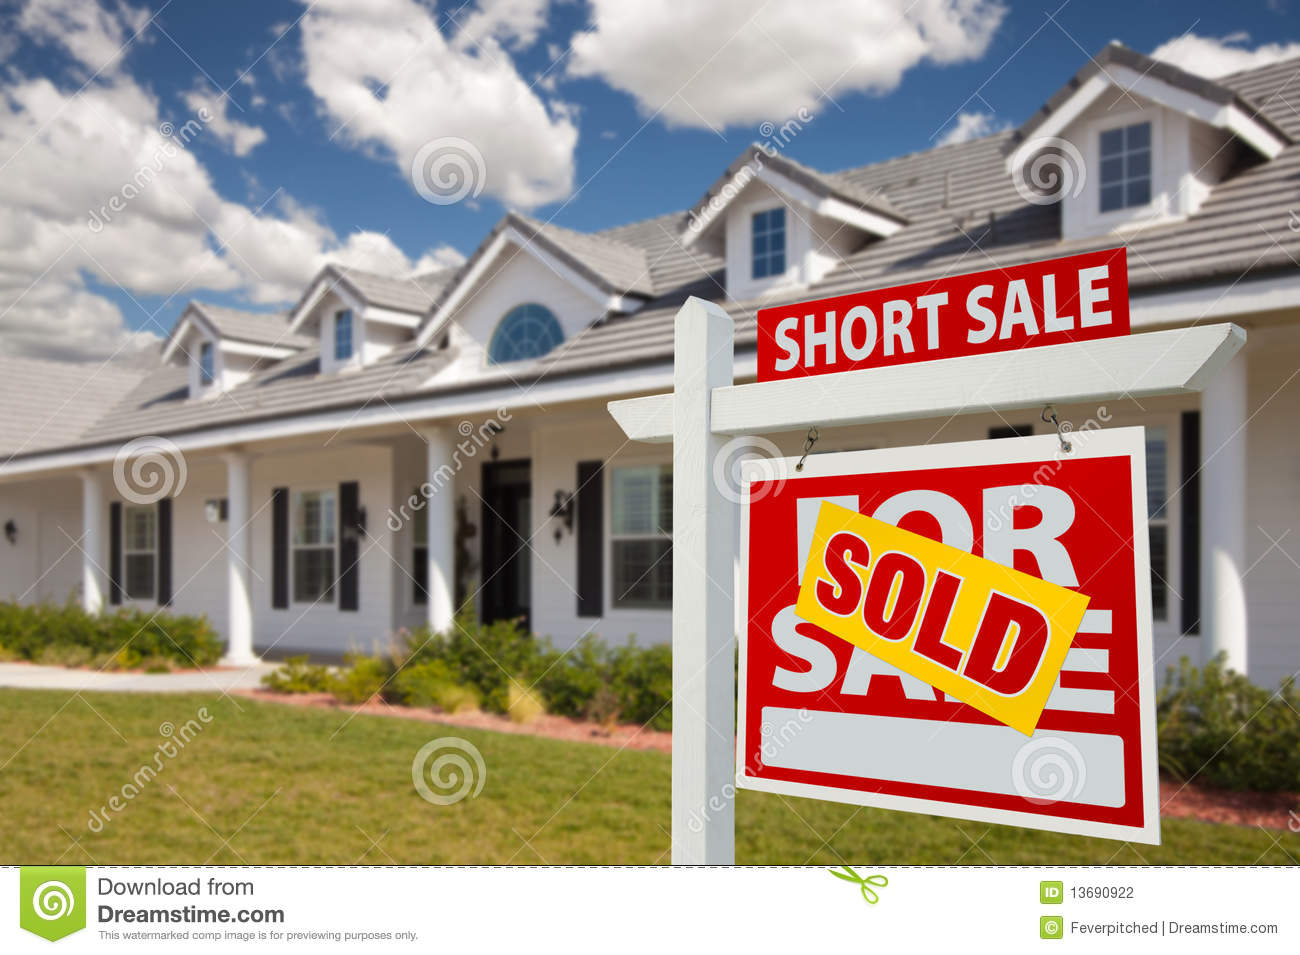 Foreclosure For Sale Real Estate Sign And House Stock